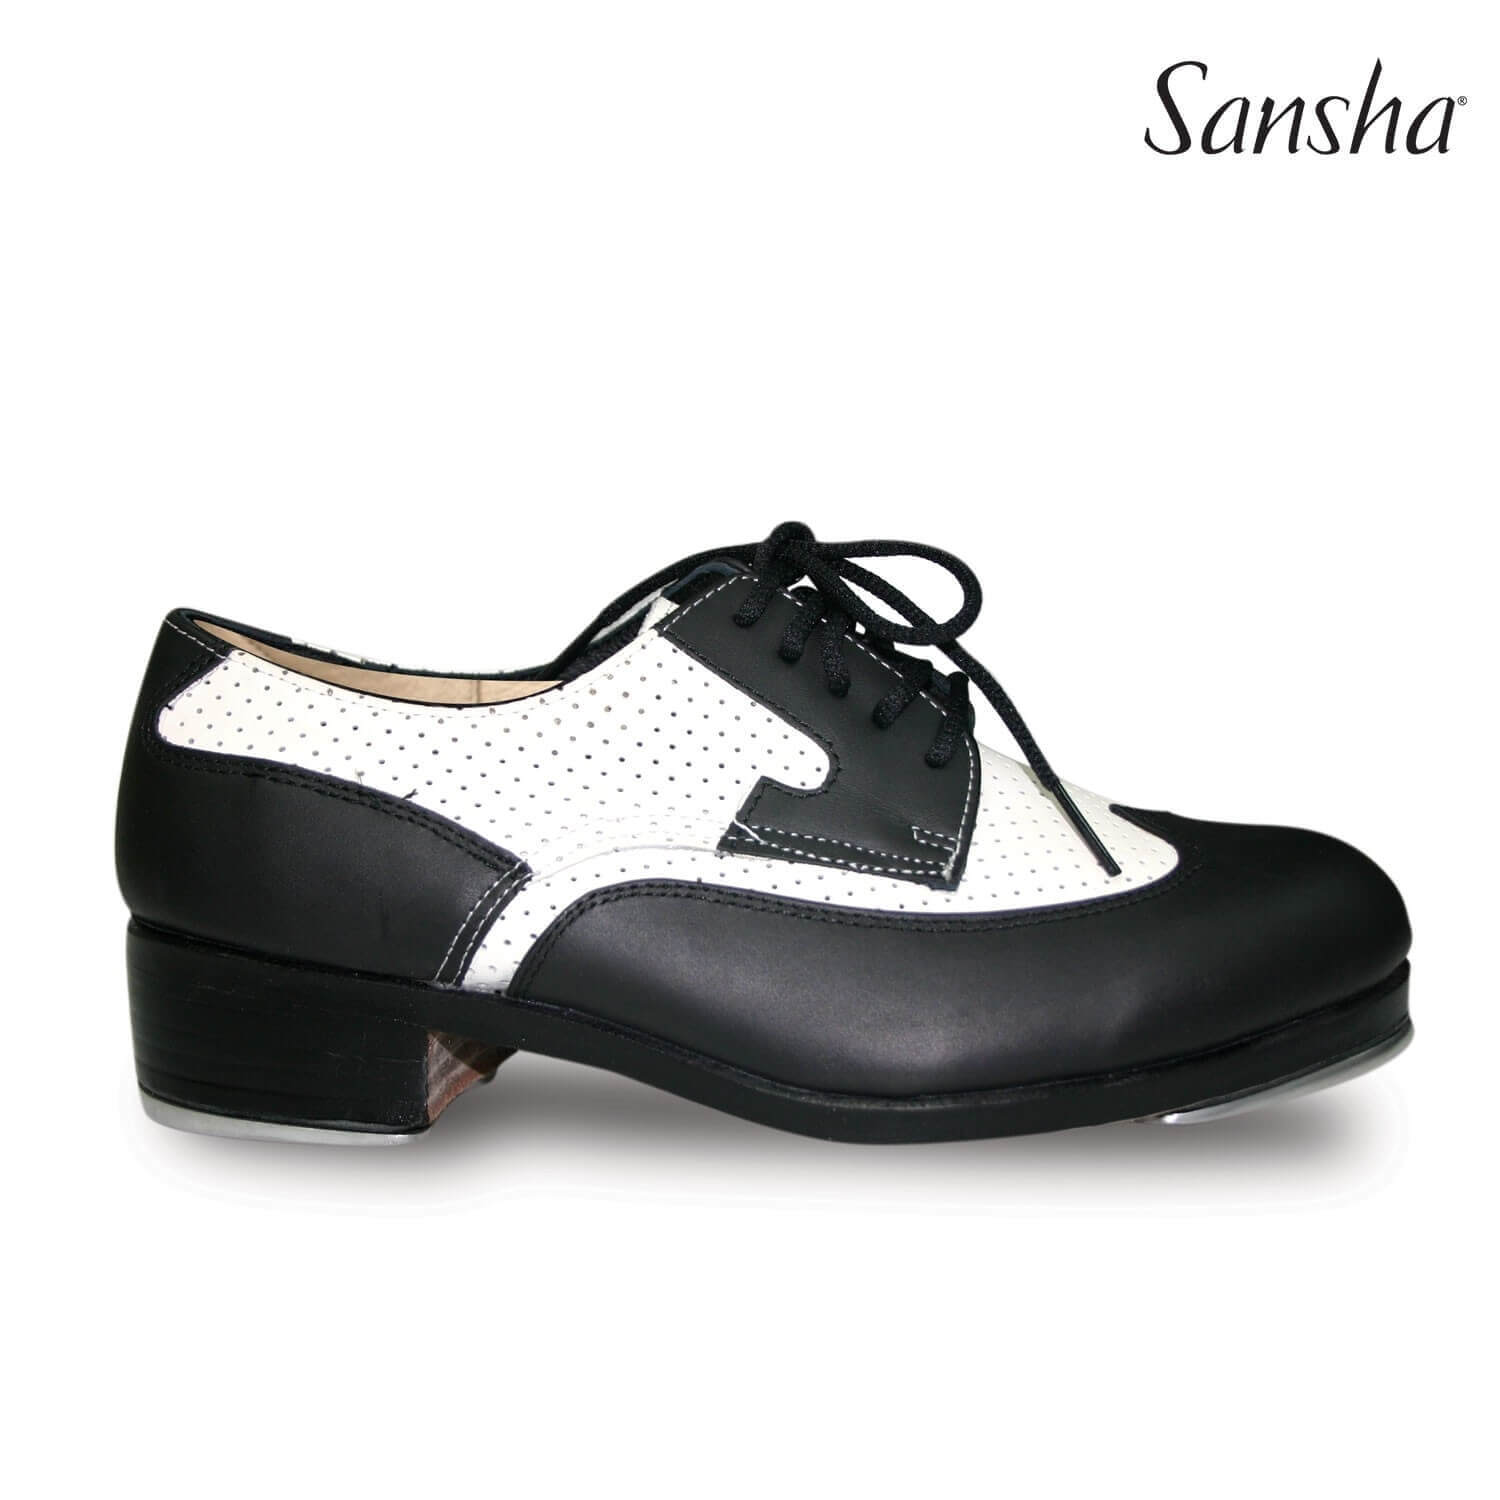 Sansha Leather Classic Two-Tone Tap Shoes with Perforated Design